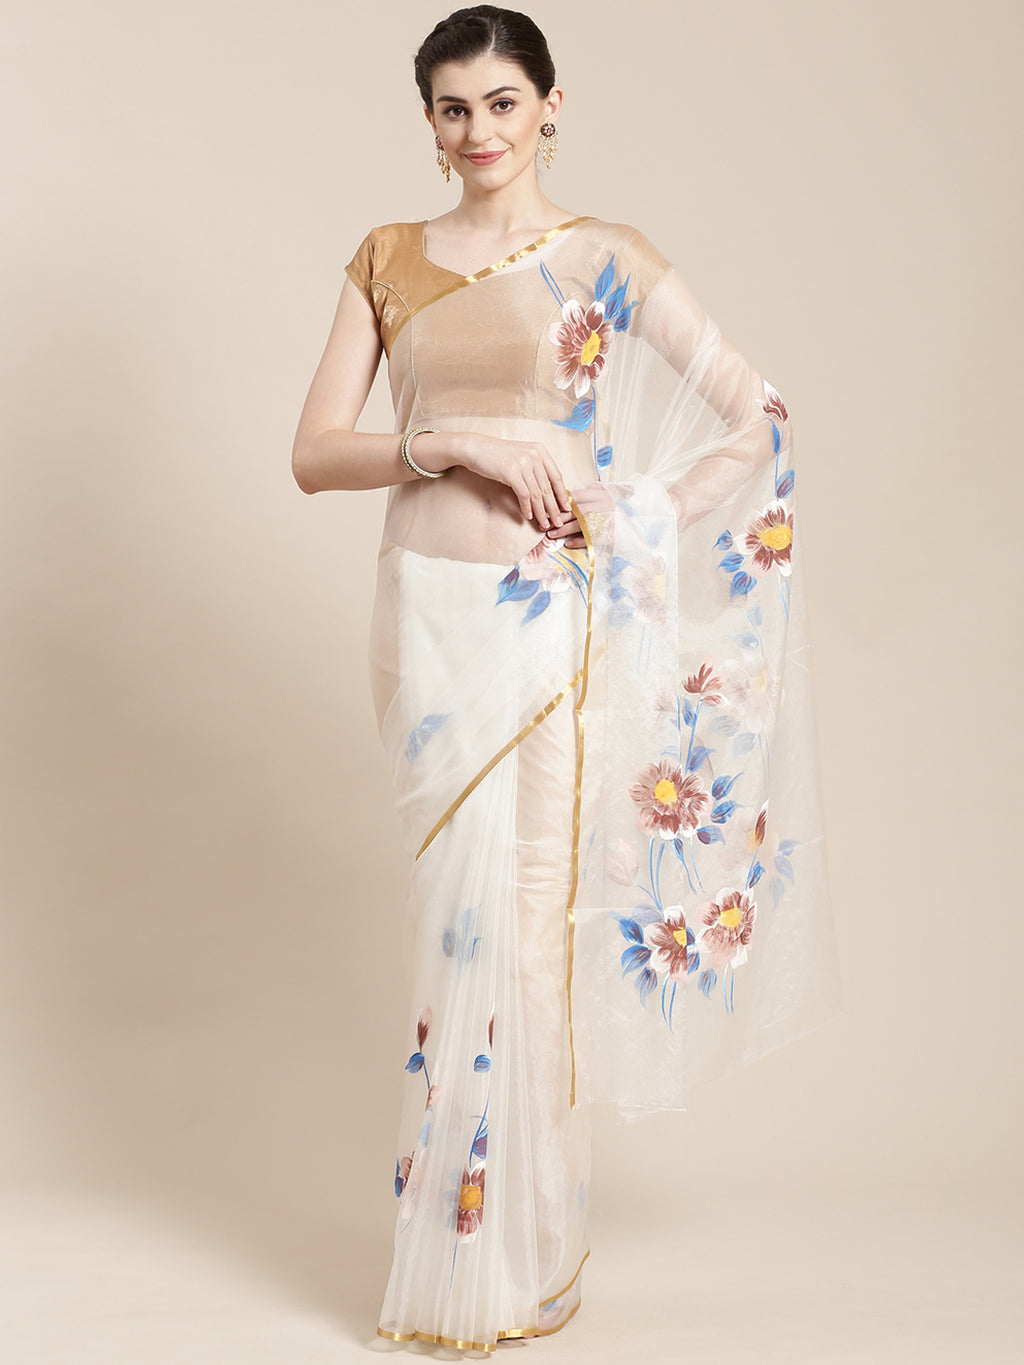 White & Blue Hand Painted Organza Saree-Saree-Kalakari India-BHKPSA0123-Hand Painted, Organza, Sarees, Sustainable Fabrics, Traditional Weave-[Linen,Ethnic,wear,Fashionista,Handloom,Handicraft,Indigo,blockprint,block,print,Cotton,Chanderi,Blue, latest,classy,party,bollywood,trendy,summer,style,traditional,formal,elegant,unique,style,hand,block,print, dabu,booti,gift,present,glamorous,affordable,collectible,Sari,Saree,printed, holi, Diwali, birthday, anniversary, sustainable, organic, scarf, onli